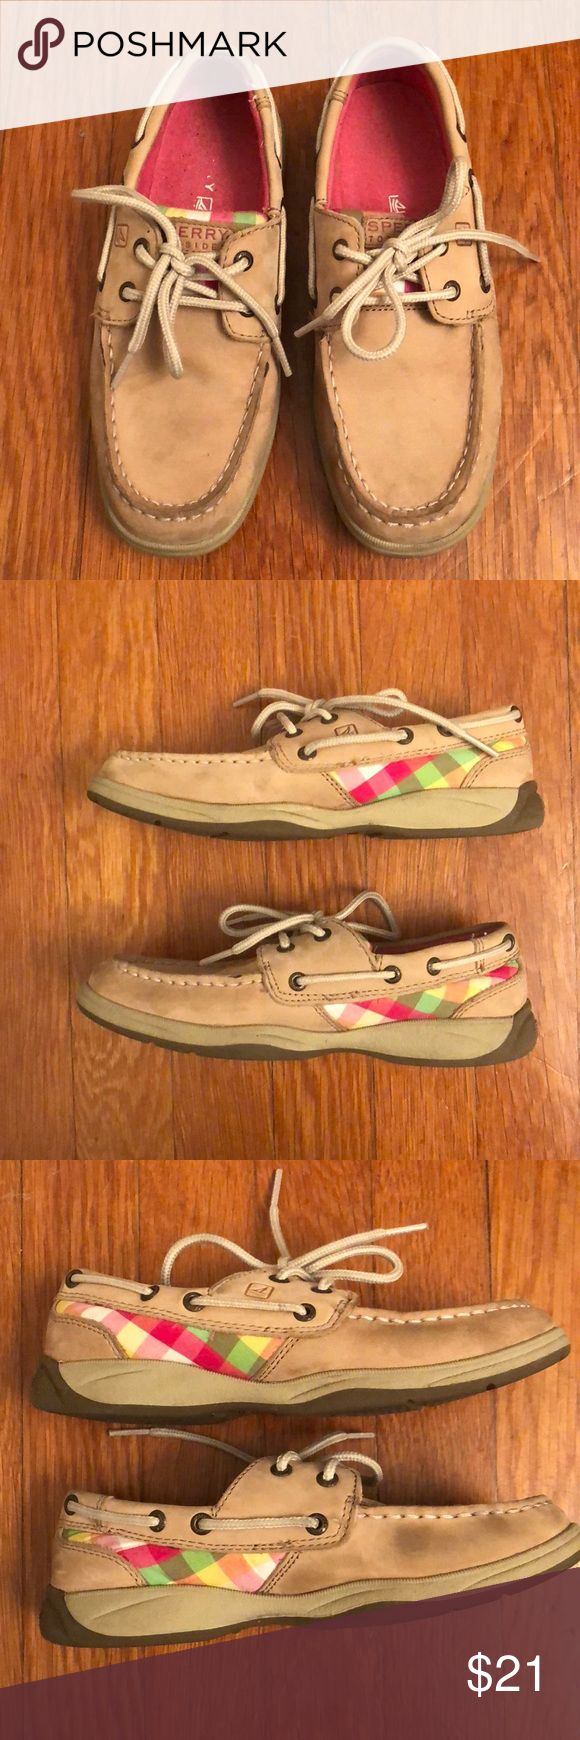 Girls Sperry Top Sider Shoes Size 2.5M Girls Sperry Top Sider Shoes Size 2.5M plaid cloth and leather. In good condition with some wear, please scroll through pictures. There is some separation that I'm sure could be easily repaired, tread has little wear. Please message me with any questions :) Sperry Top-Sider Shoes